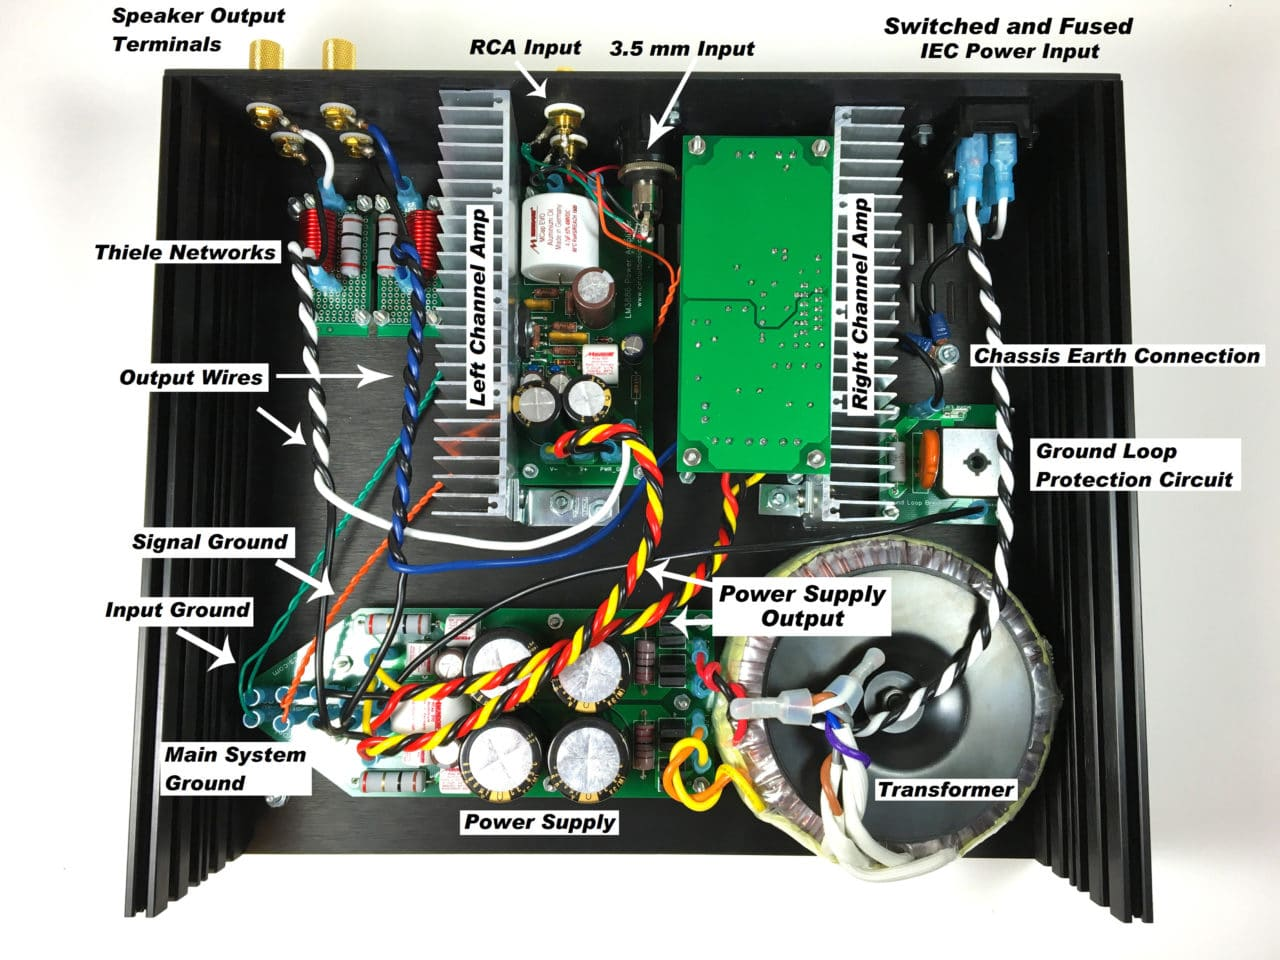 A complete guide to design and build a hi fi lm3886 amplifier in this arrangement the heat sinks provide some shielding from the thiele networks and the ac wires leading to the transformer greentooth Images